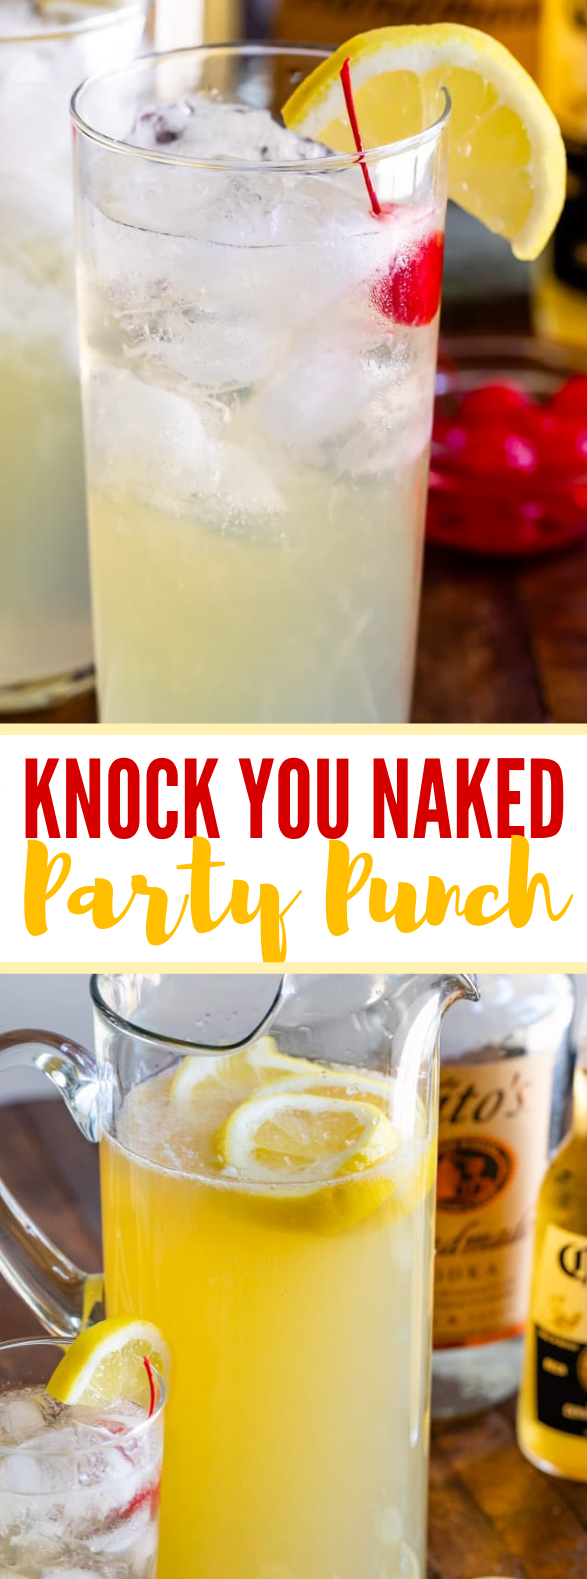 KNOCK YOU NAKED PARTY PUNCH #drinks #vodka